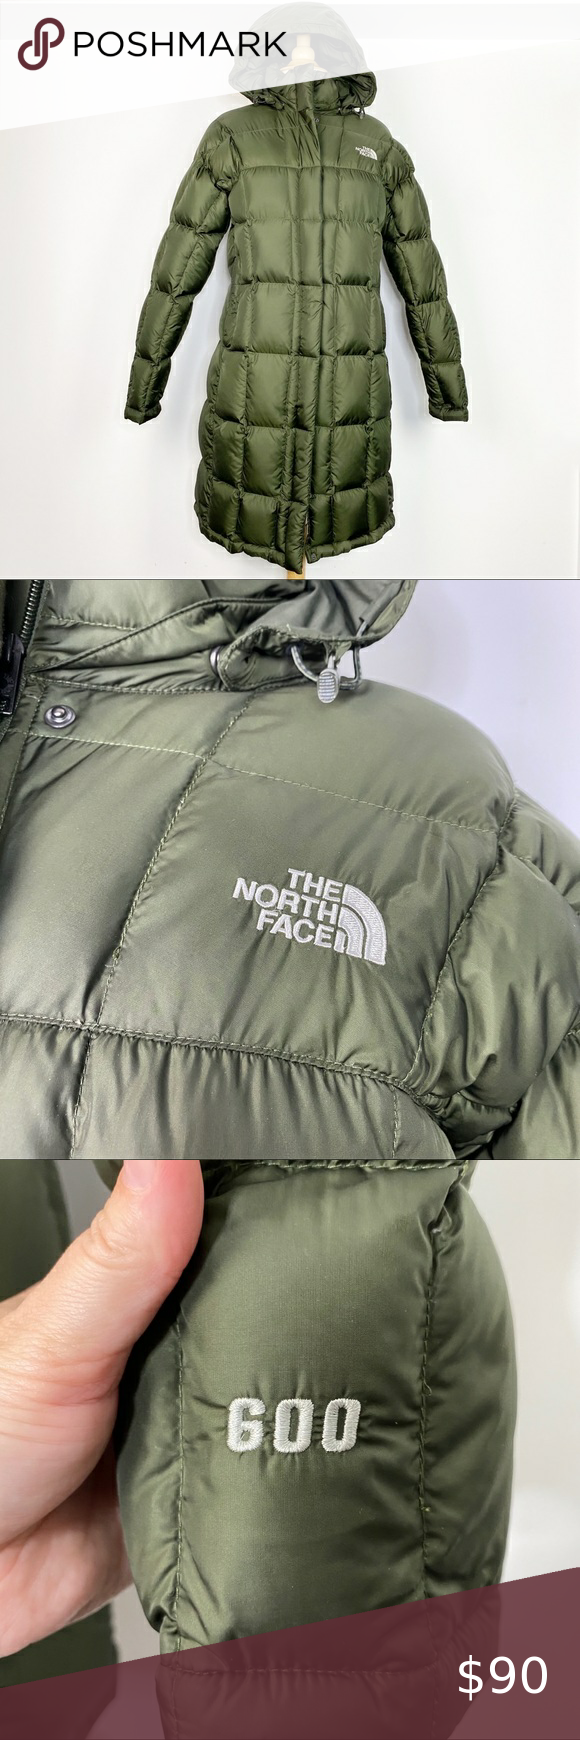 North Face Olive Green Long Down Puffer Jacket M The North Face Puffer Puffer Jackets [ 1740 x 580 Pixel ]